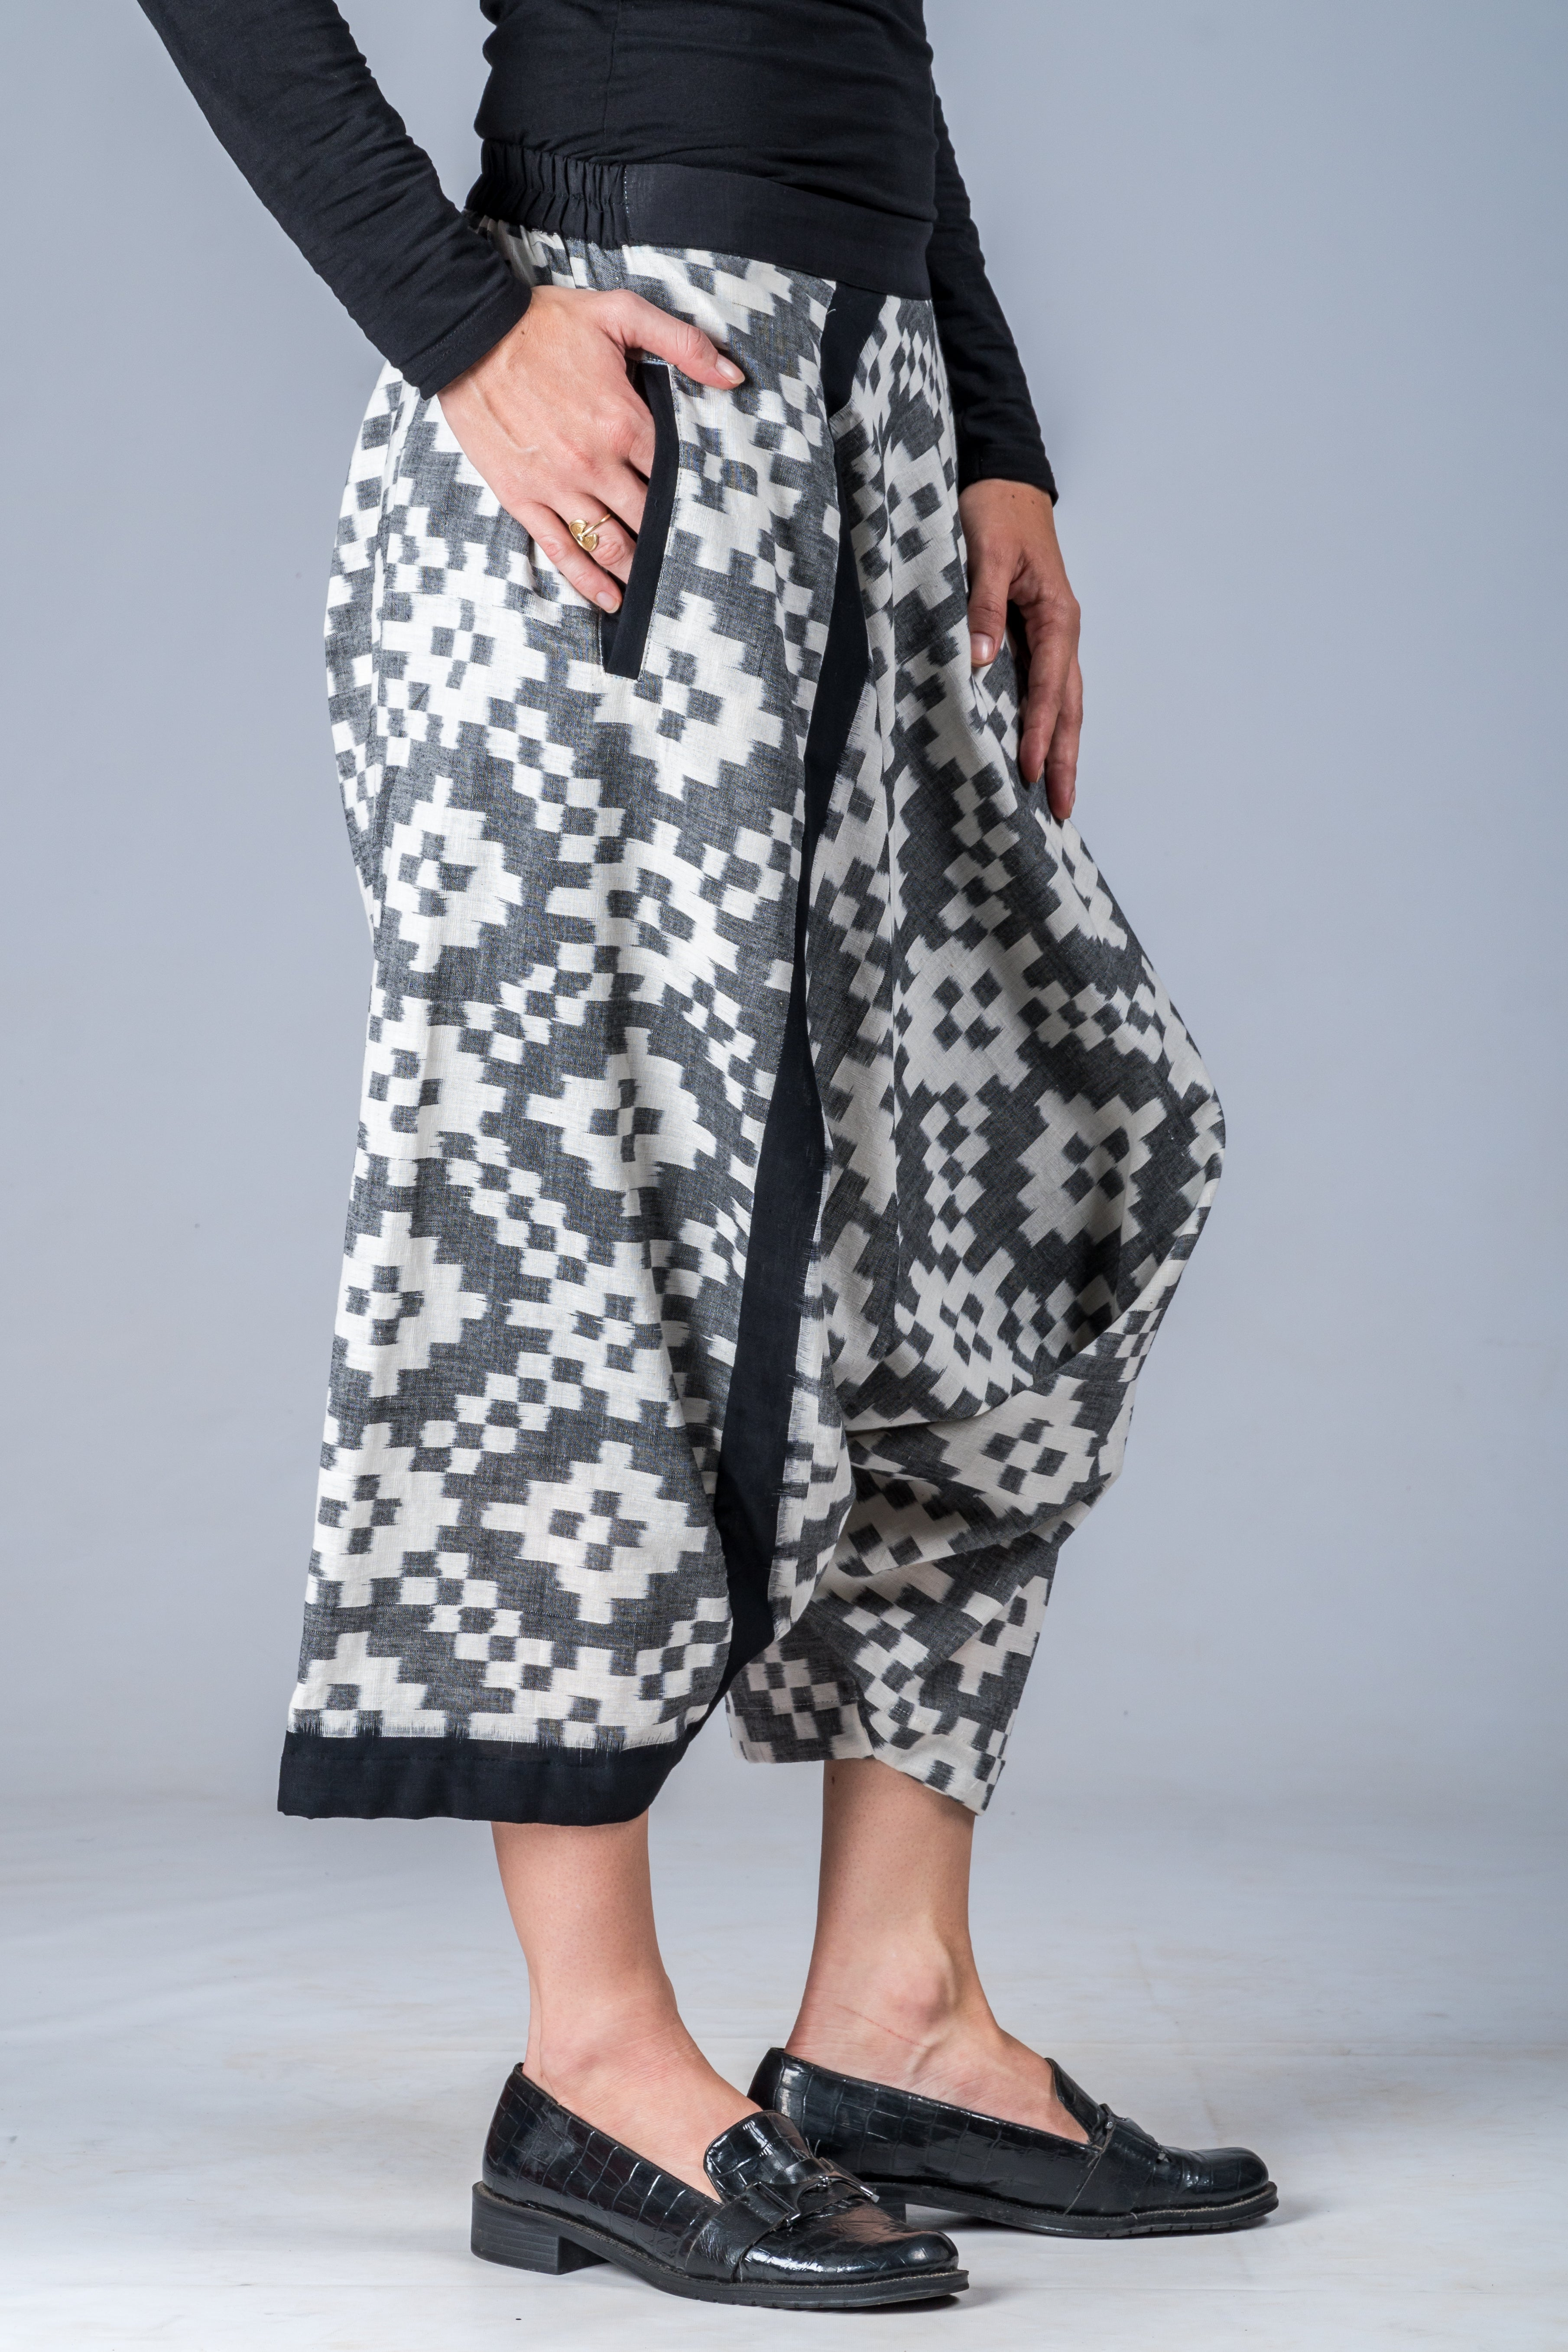 White and Grey Ikat Pattern - Turkish Mid Length Pant